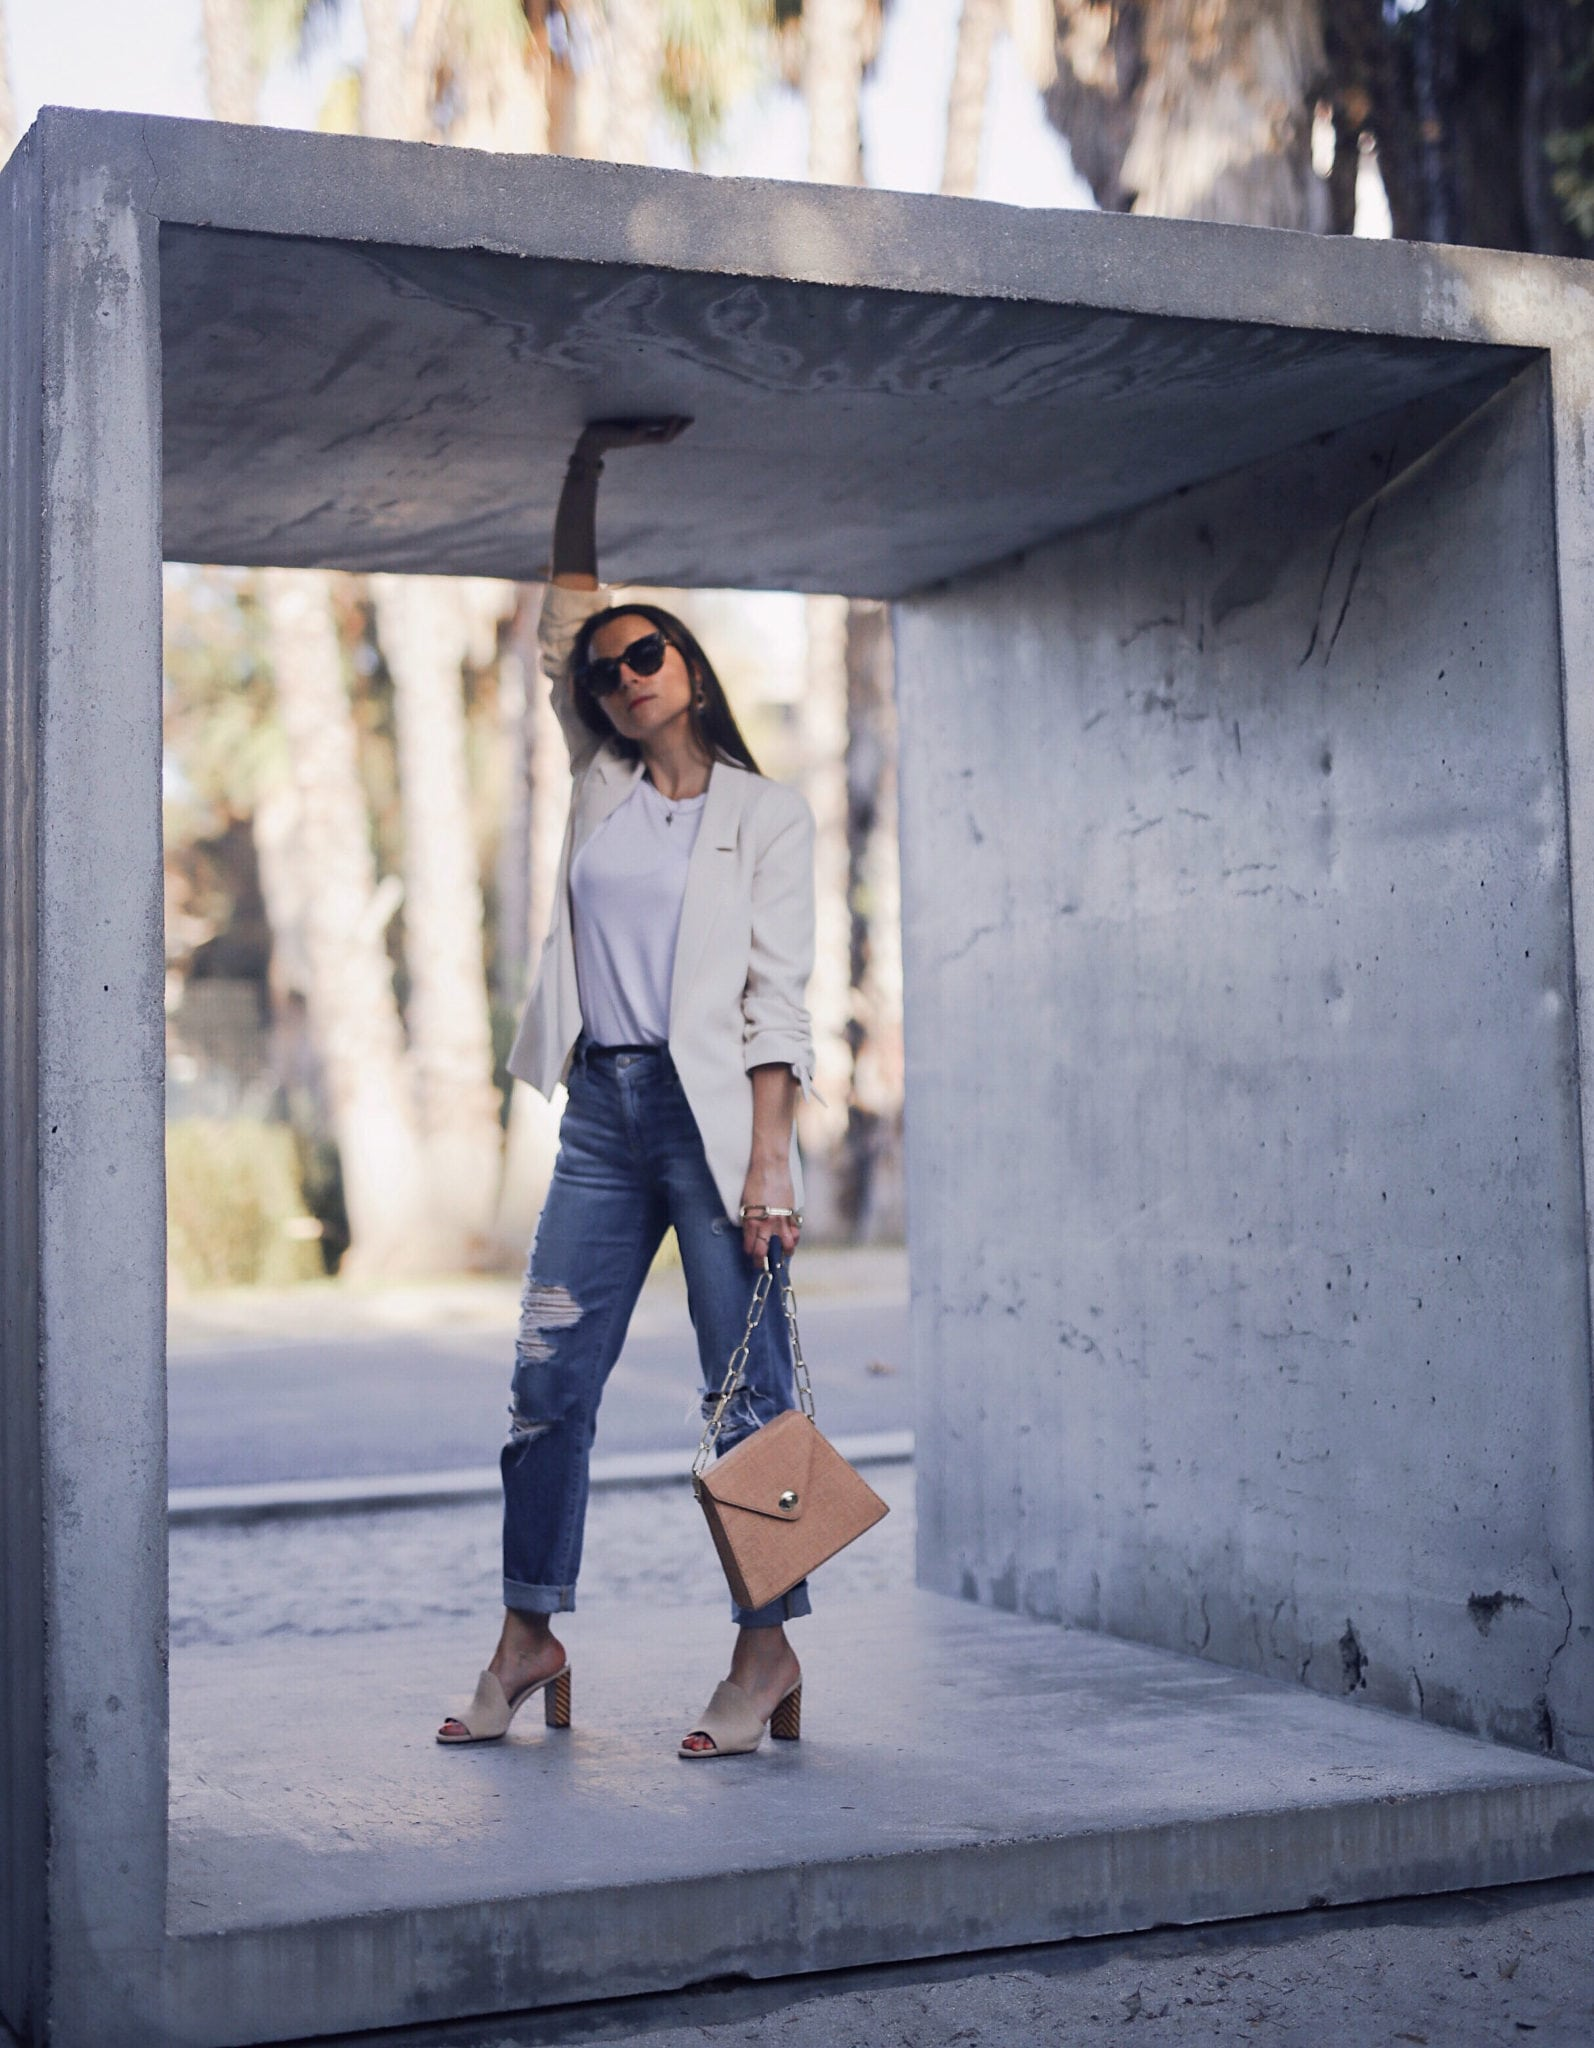 Style upgrade: The Summer blazer for women. Fashion Blogger Julia Comil is wearing a cream summer blazer from River Island. The full look and selection of affordable summer blazers on Houseofcomil.com